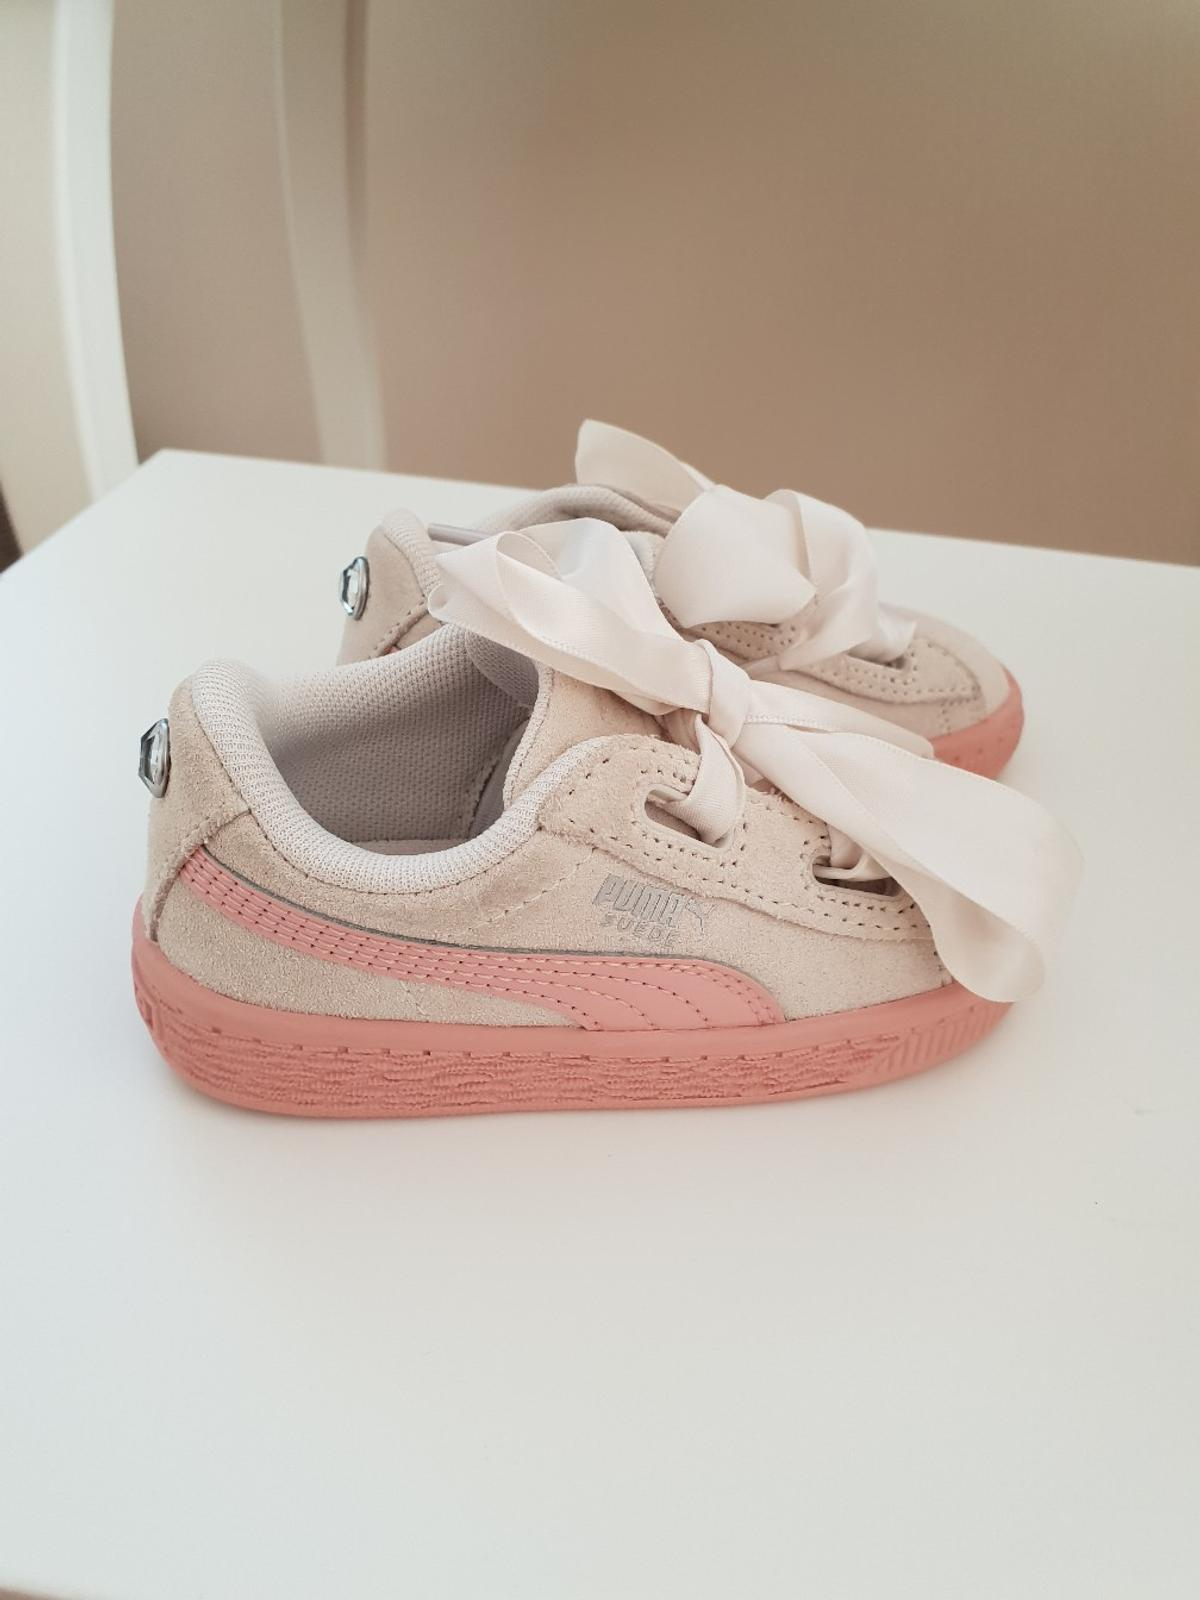 official photos a6ac6 d25bb Toddler Girls Puma Trainers Infant Size 5